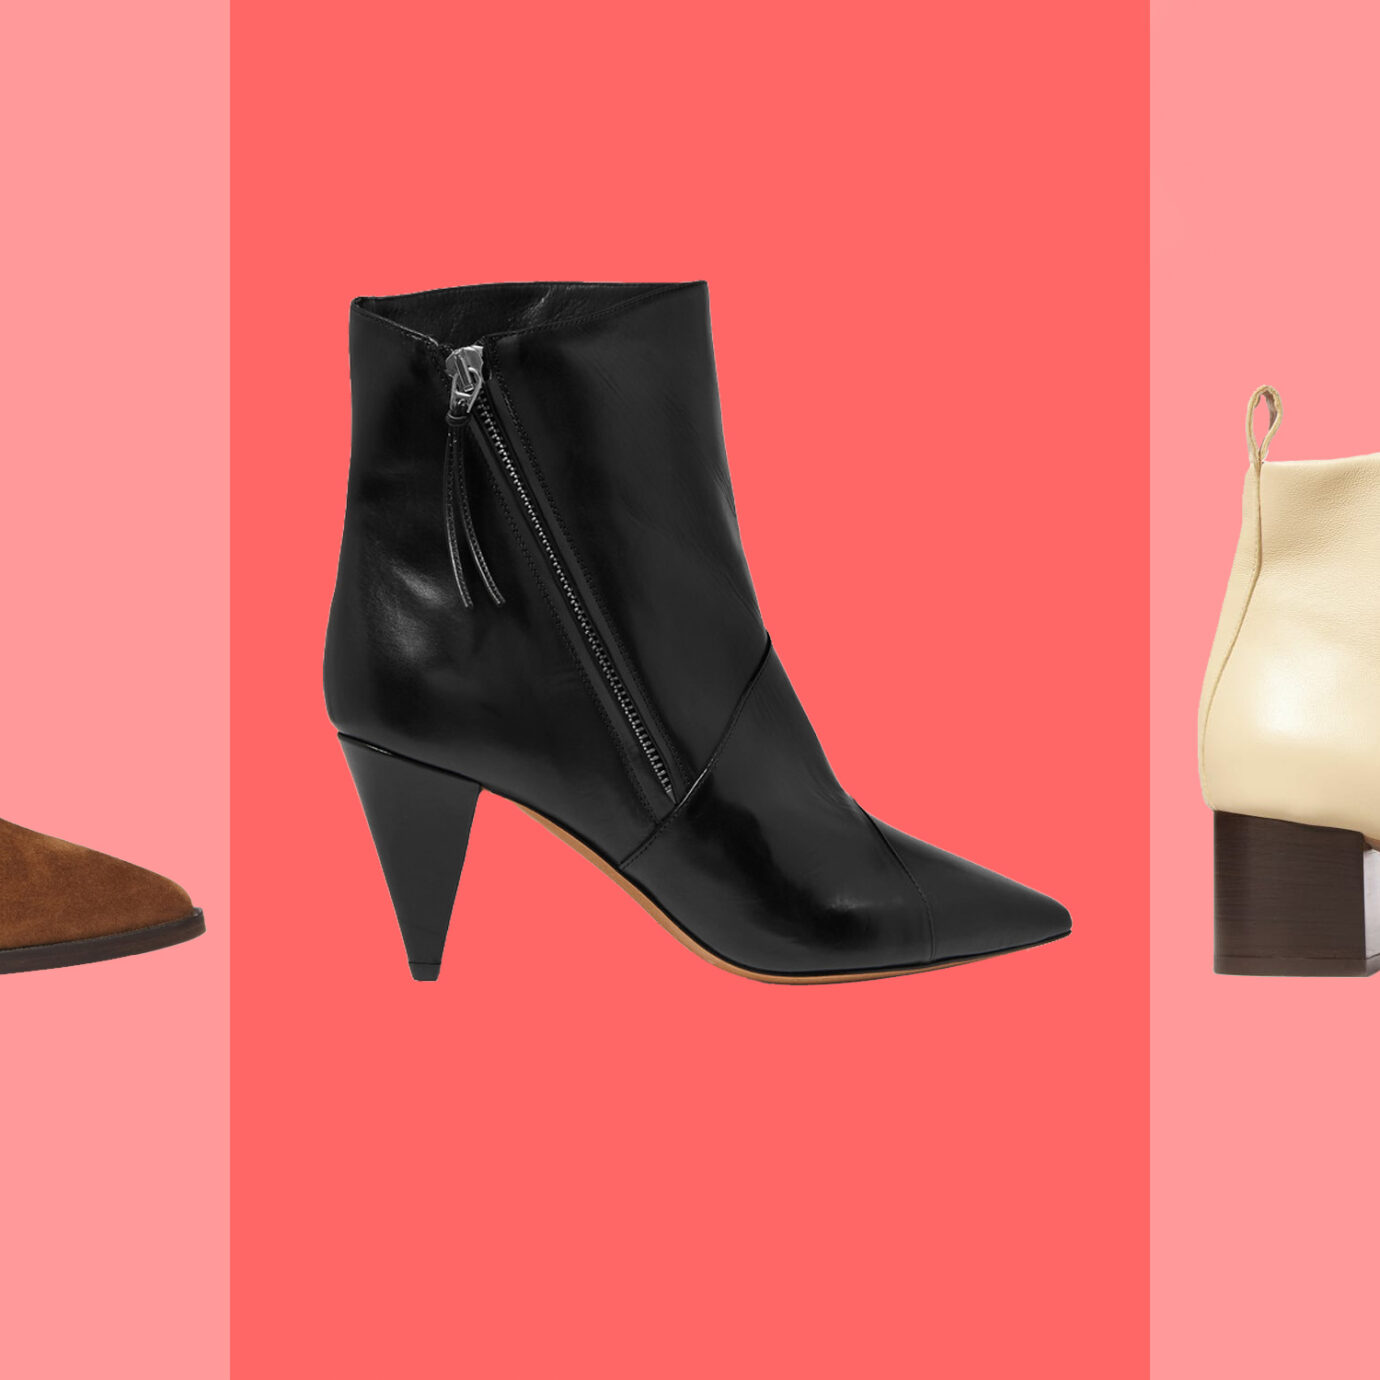 Cute booties on sale